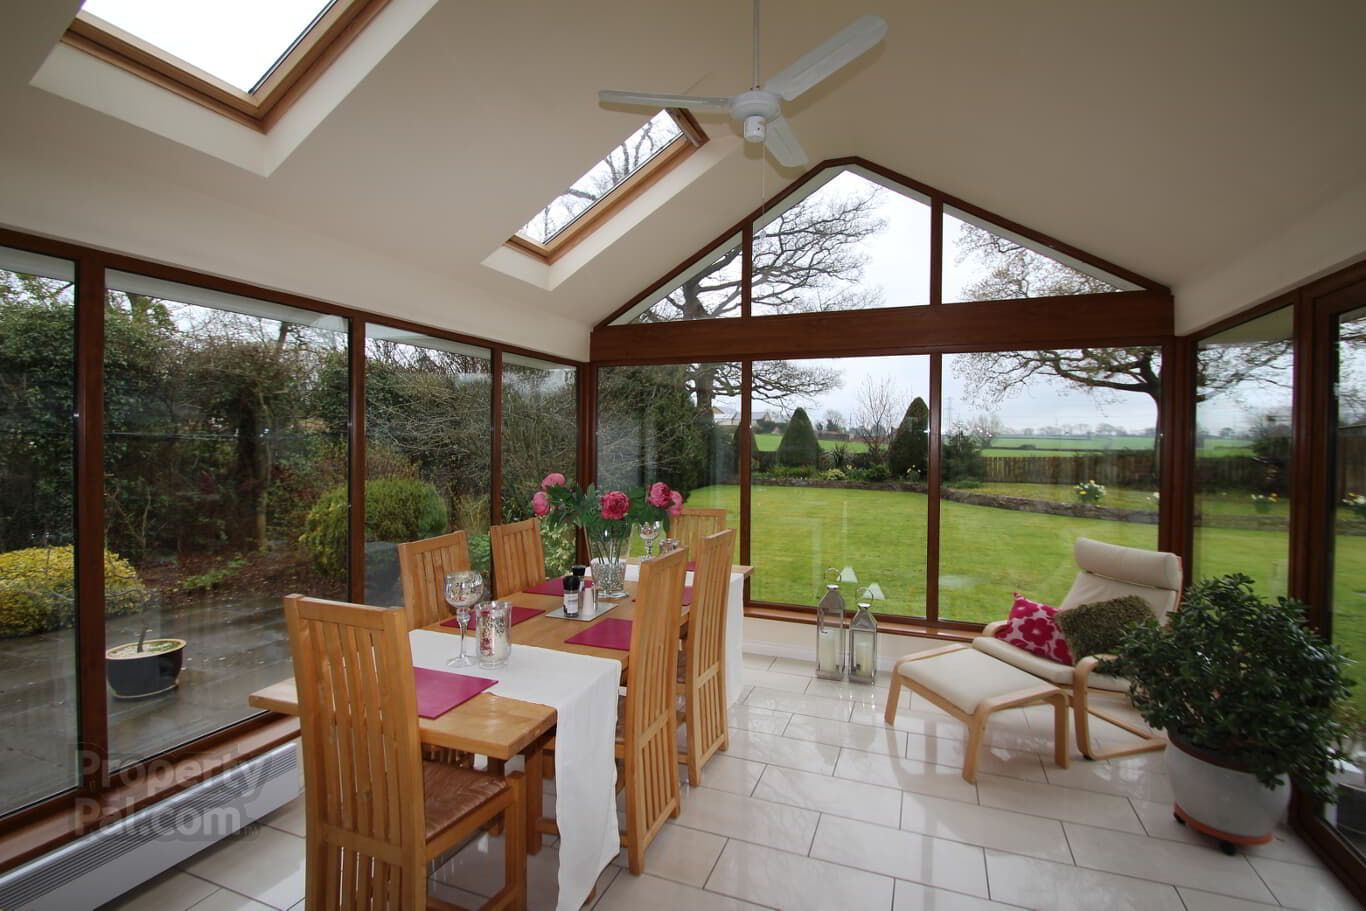 12 Richmond Chase, Mullavilly, Craigavon Property for